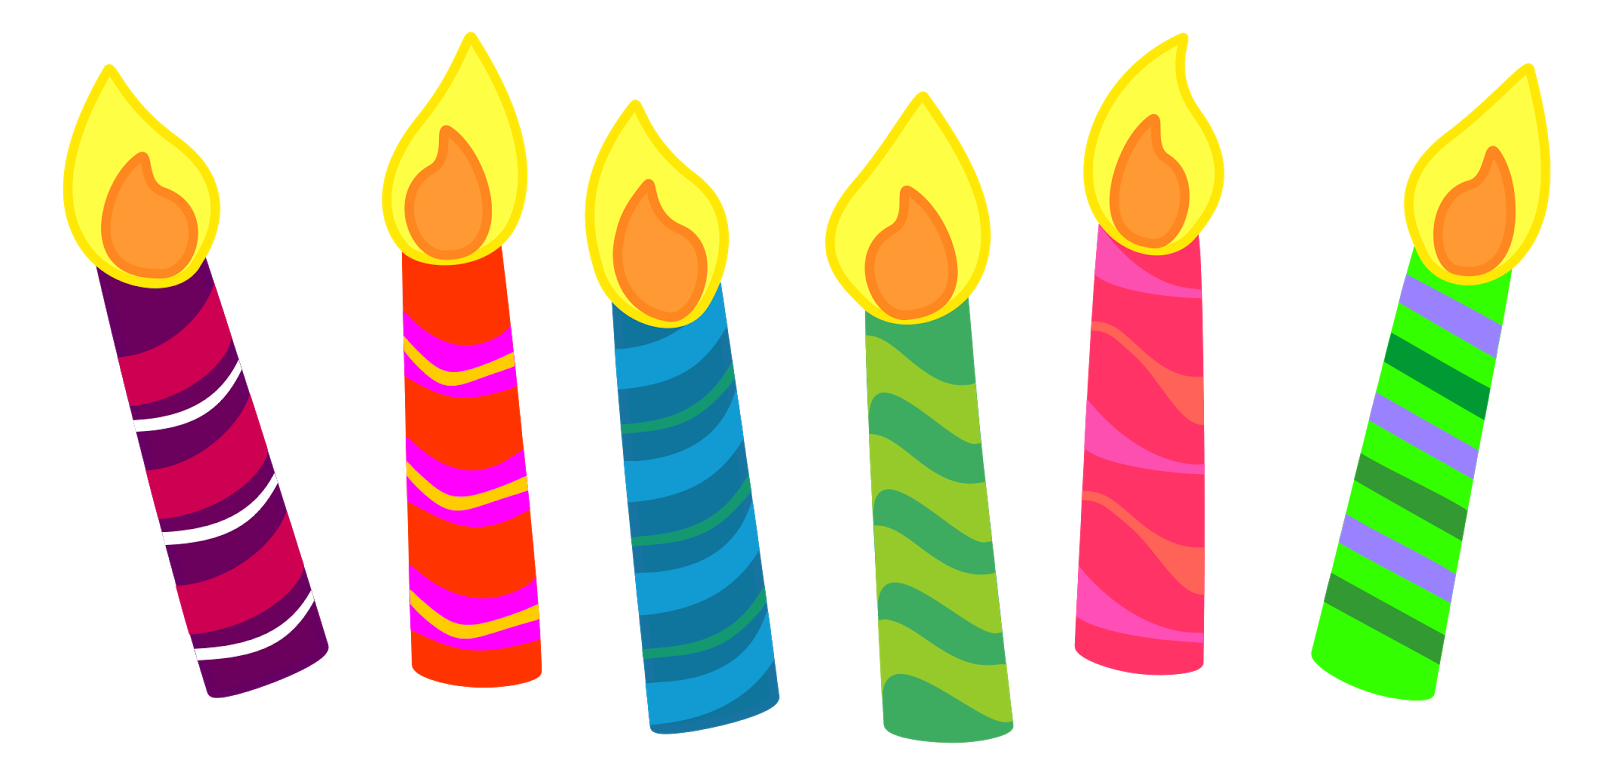 png royalty free library Candle clipart. For your projects or.